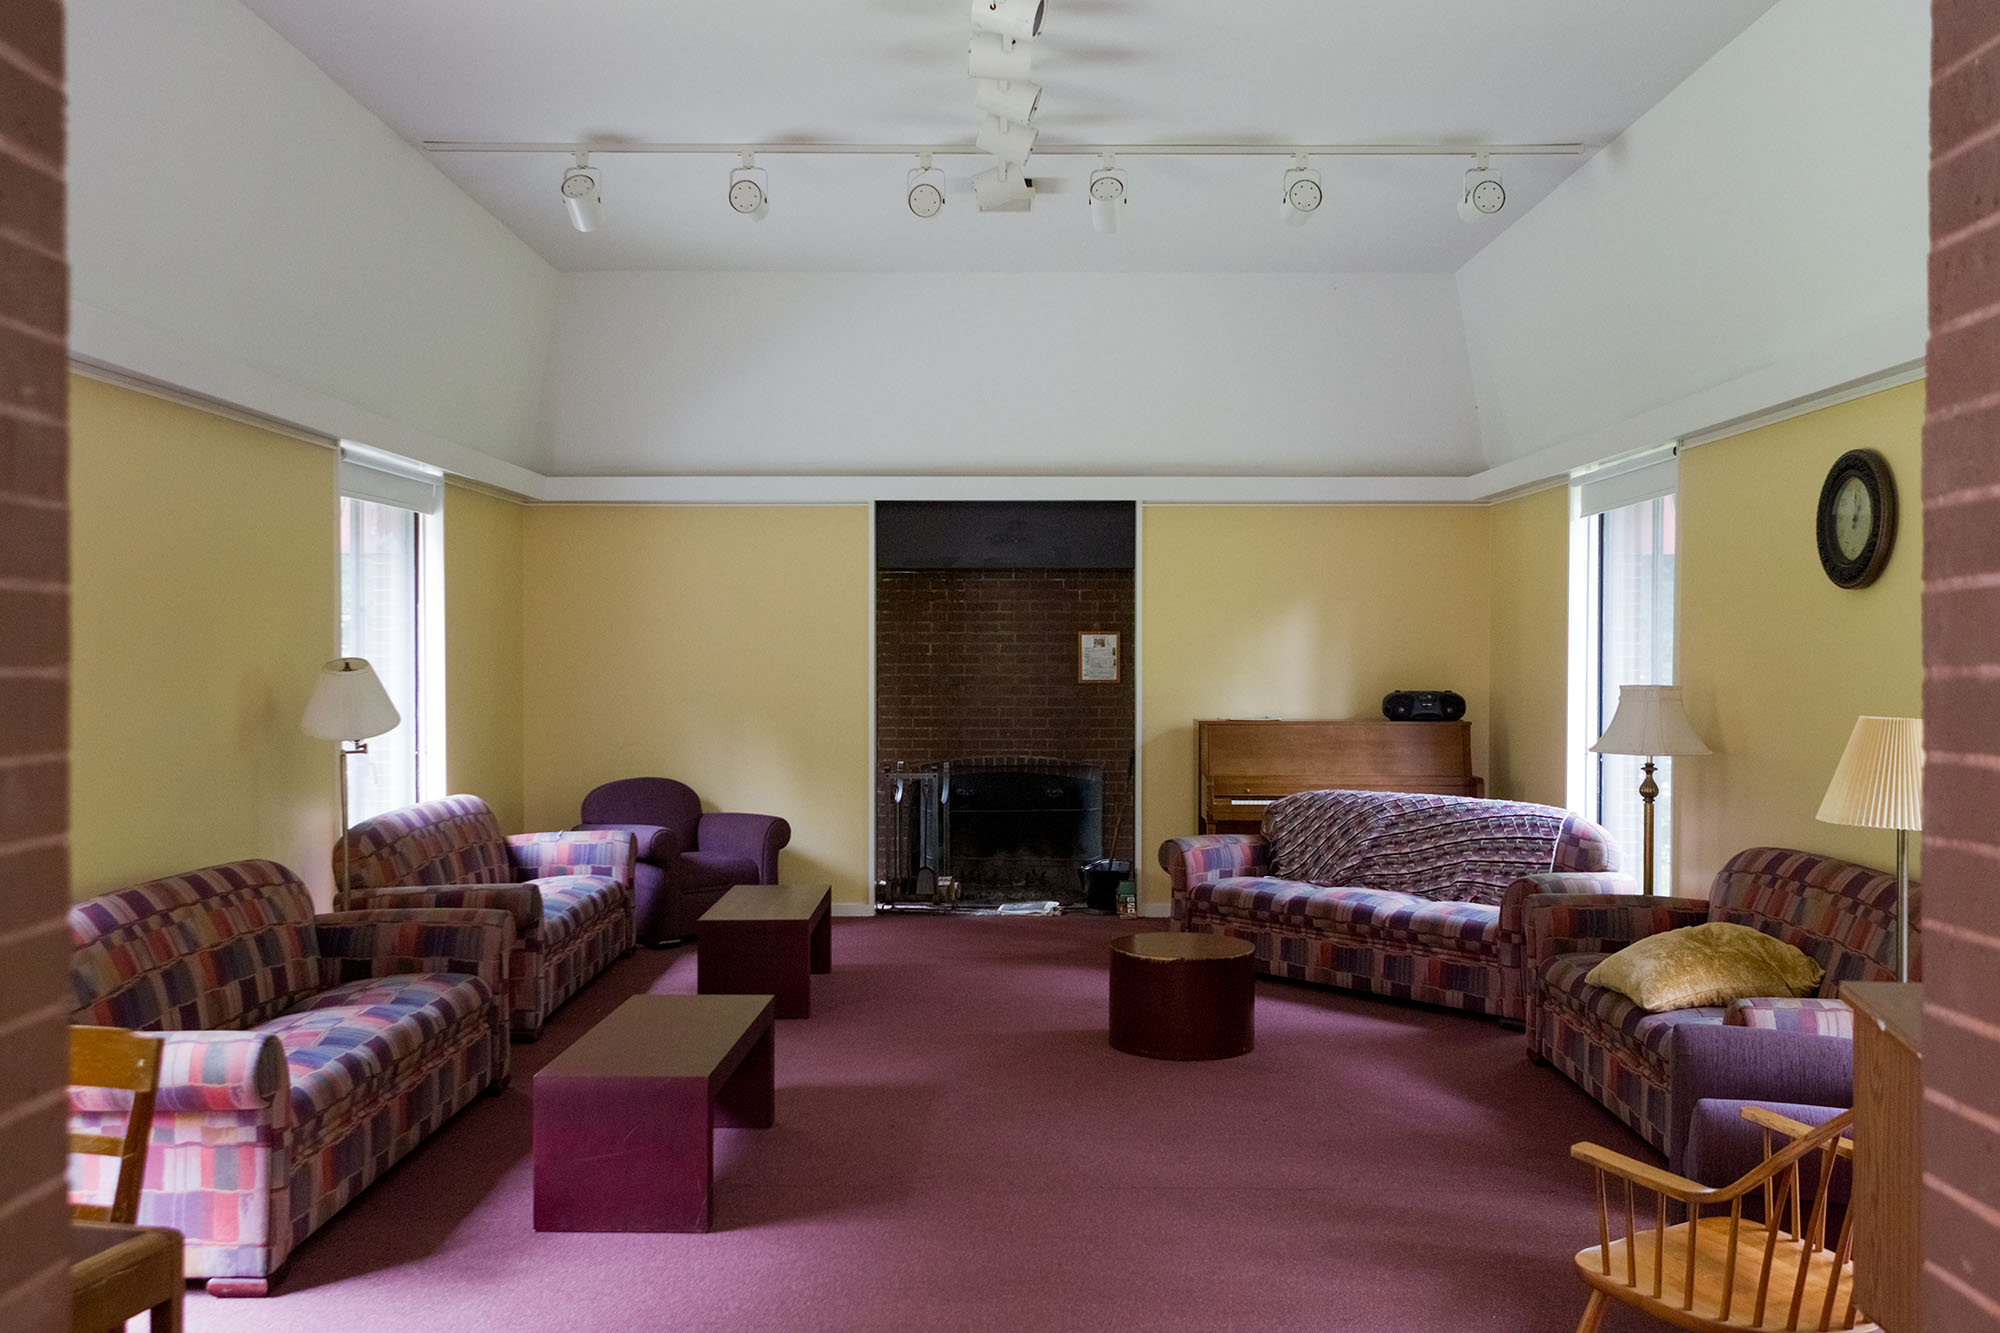 Amherst college cadigan center for religious life for Amherst family room